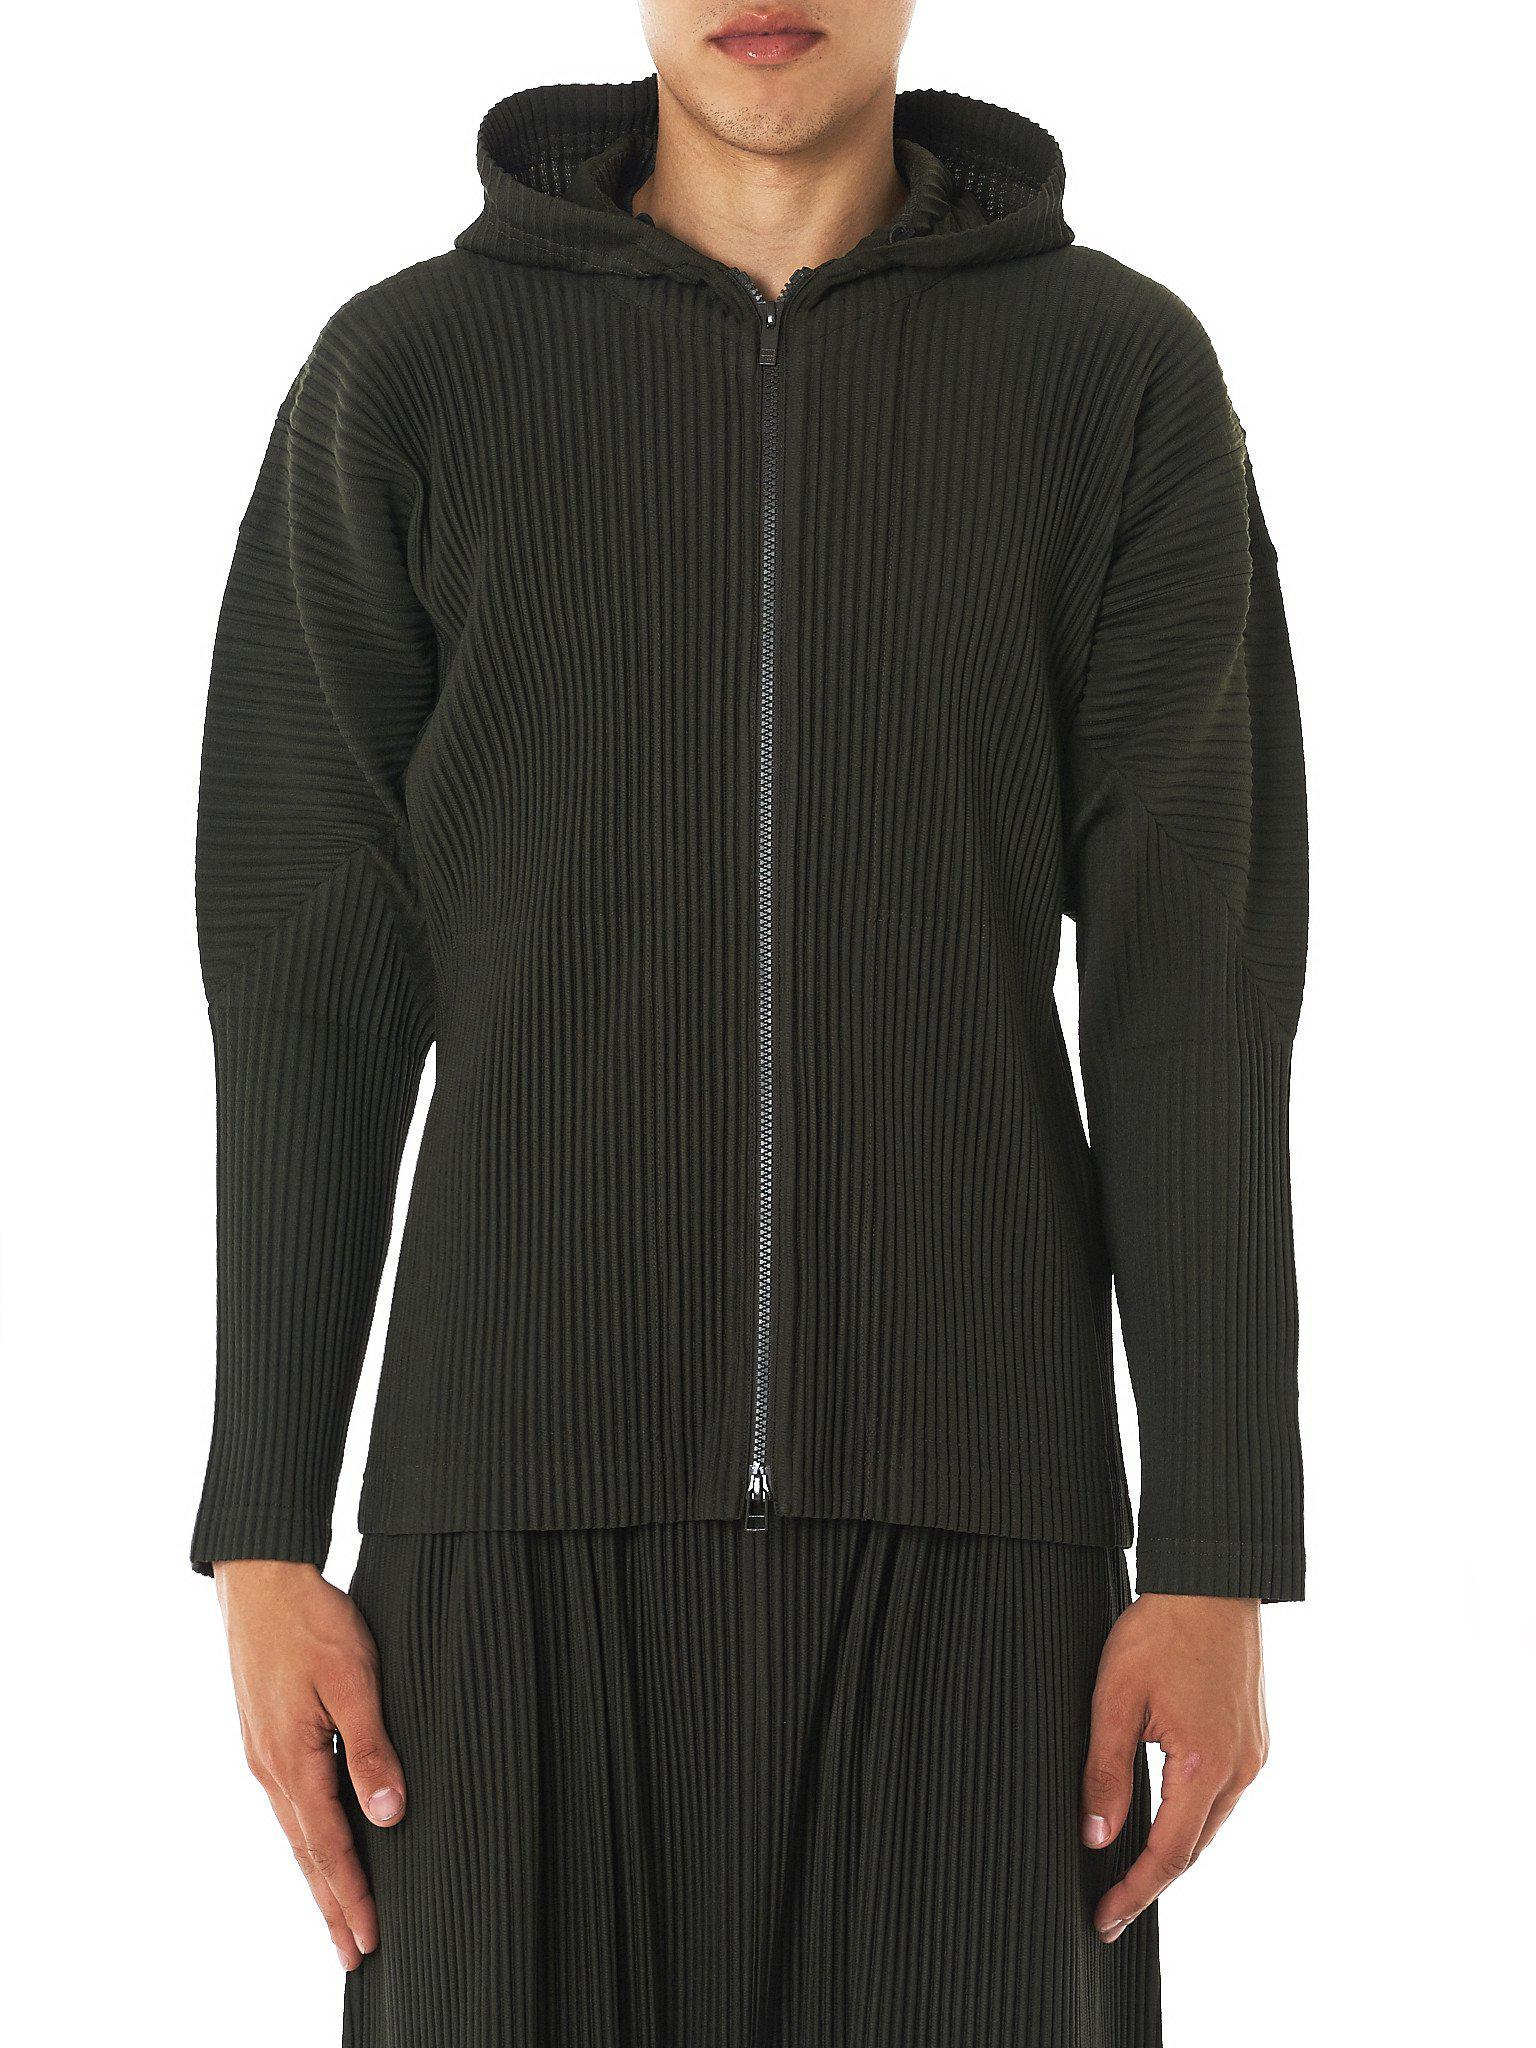 lyst homme pliss issey miyake pleated hooded sweater for men. Black Bedroom Furniture Sets. Home Design Ideas